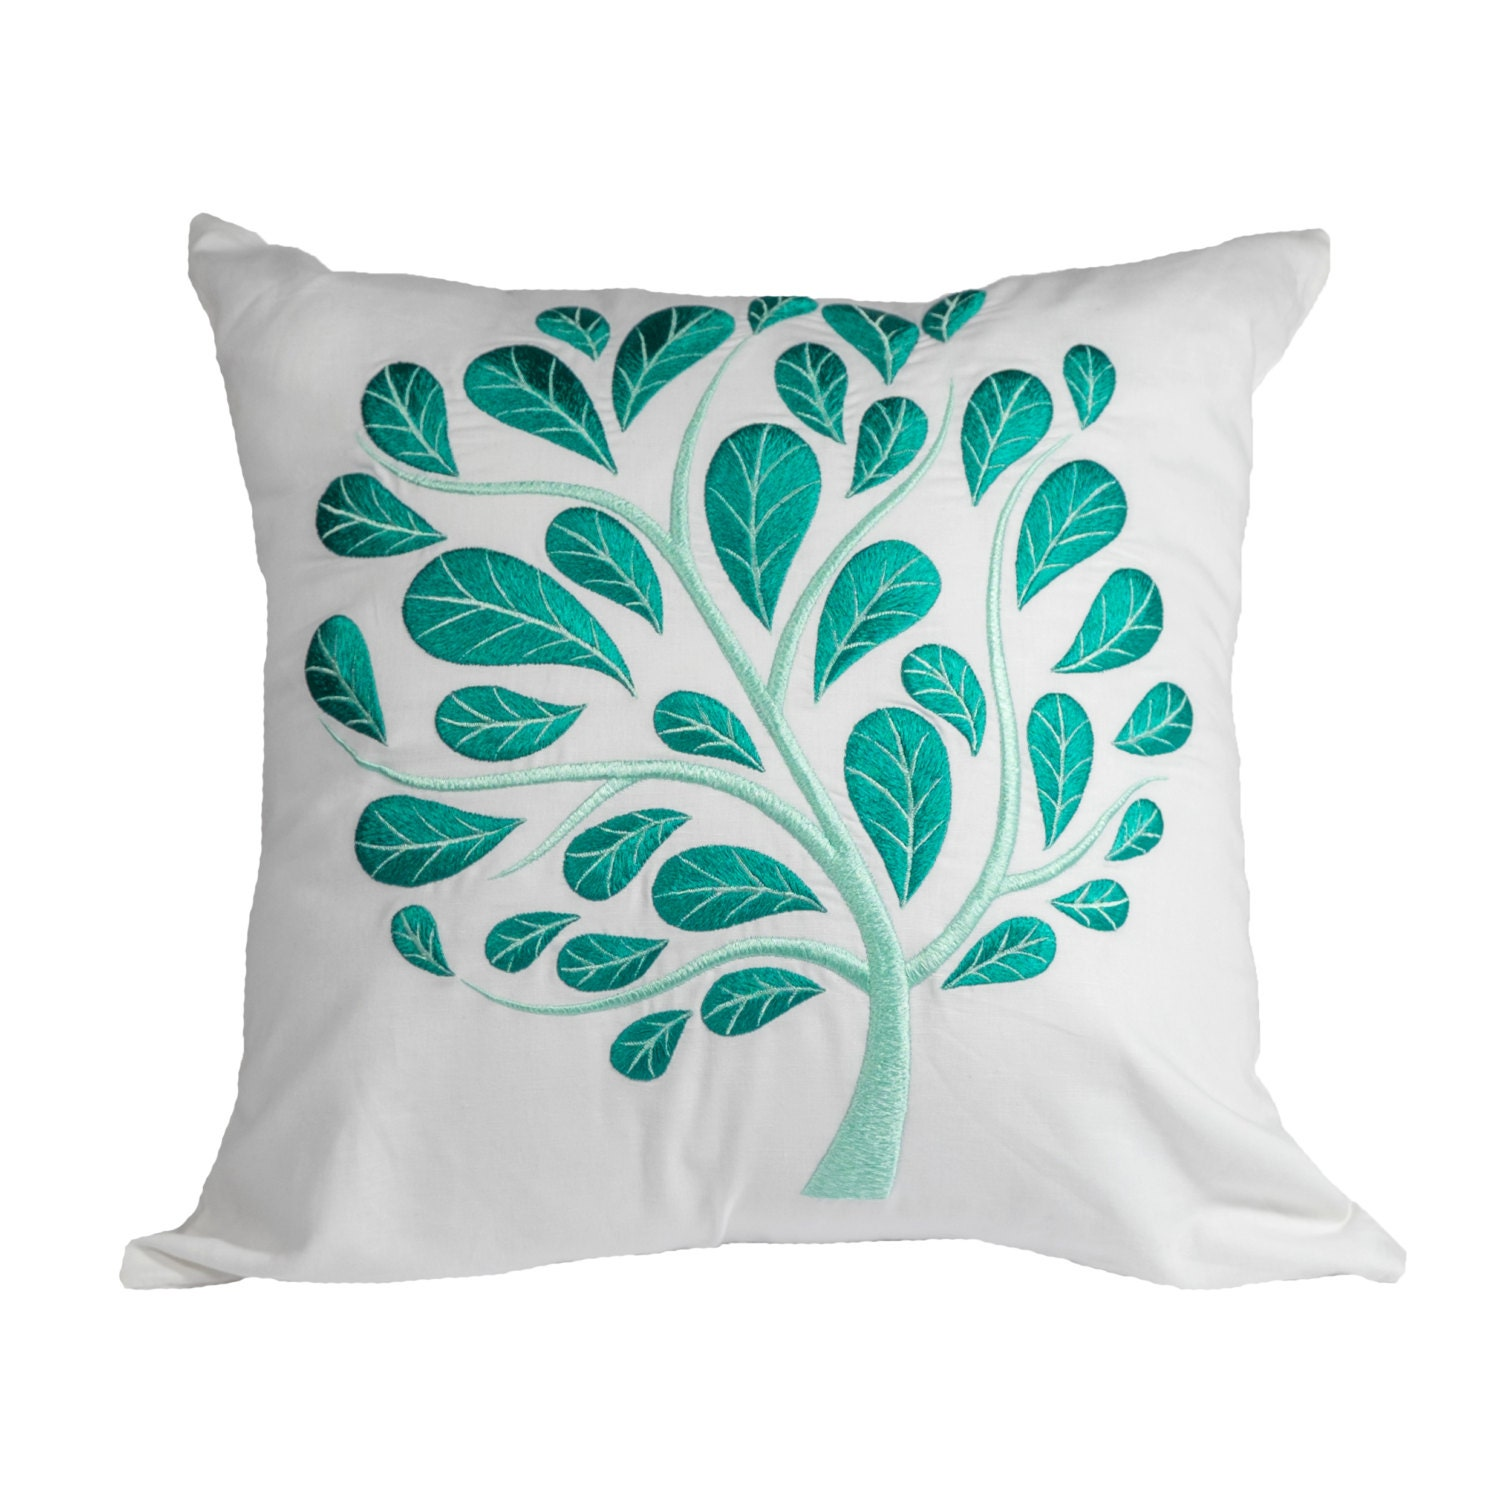 White Teal Floral Throw Pillow Cover White Linen Teal